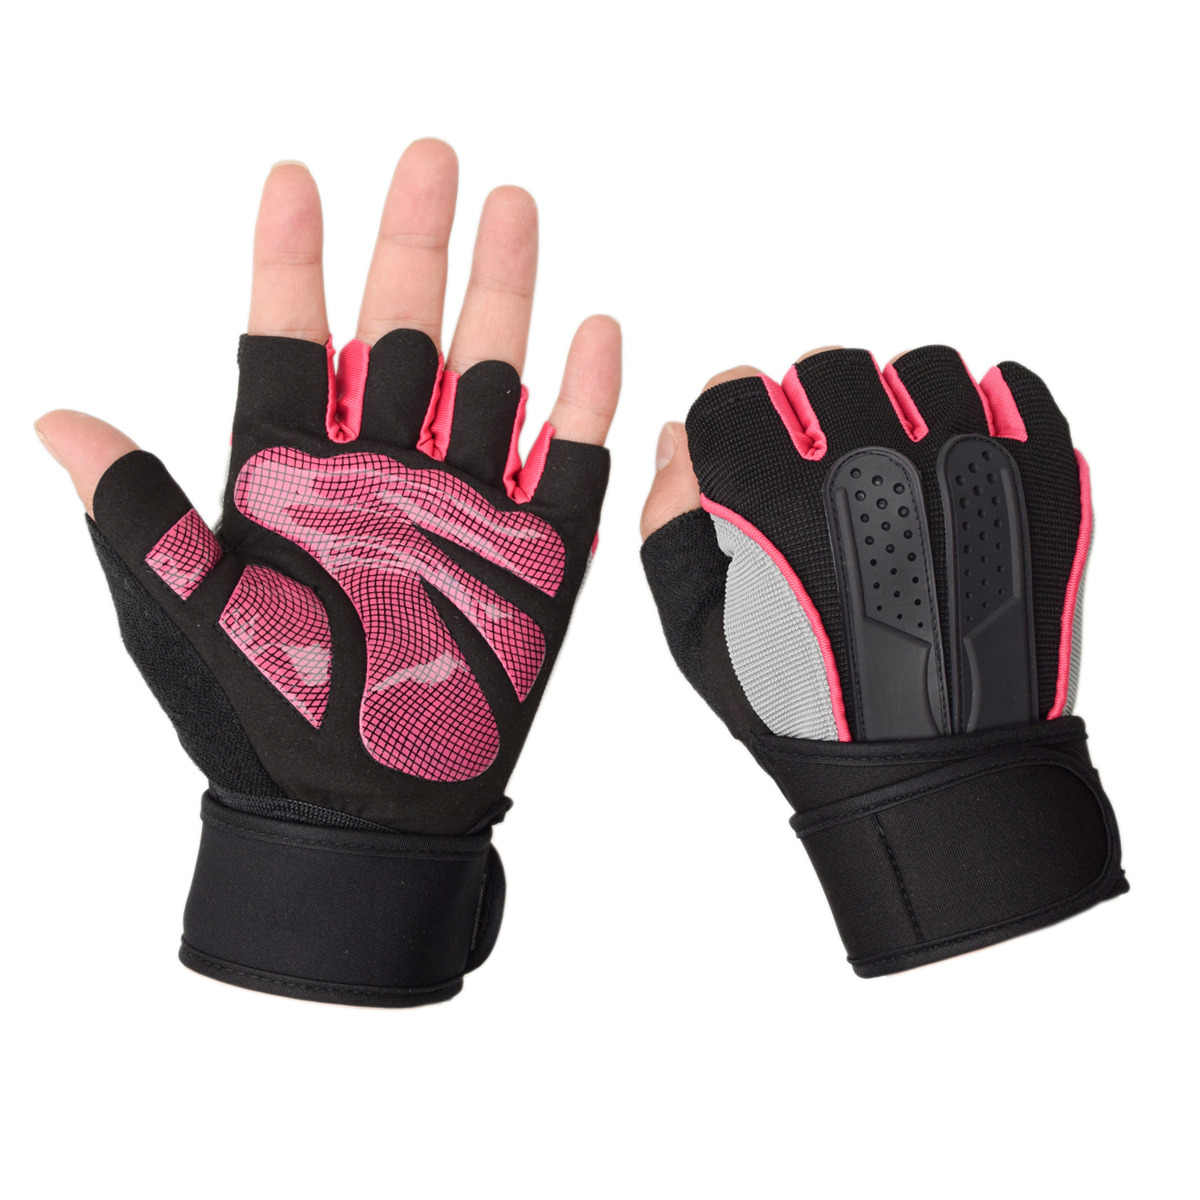 Women Sports Gym Training Gloves Half Finger Fitness Exercise Gloves Non-slip Weight Lifting Body Building Breathable Gloves